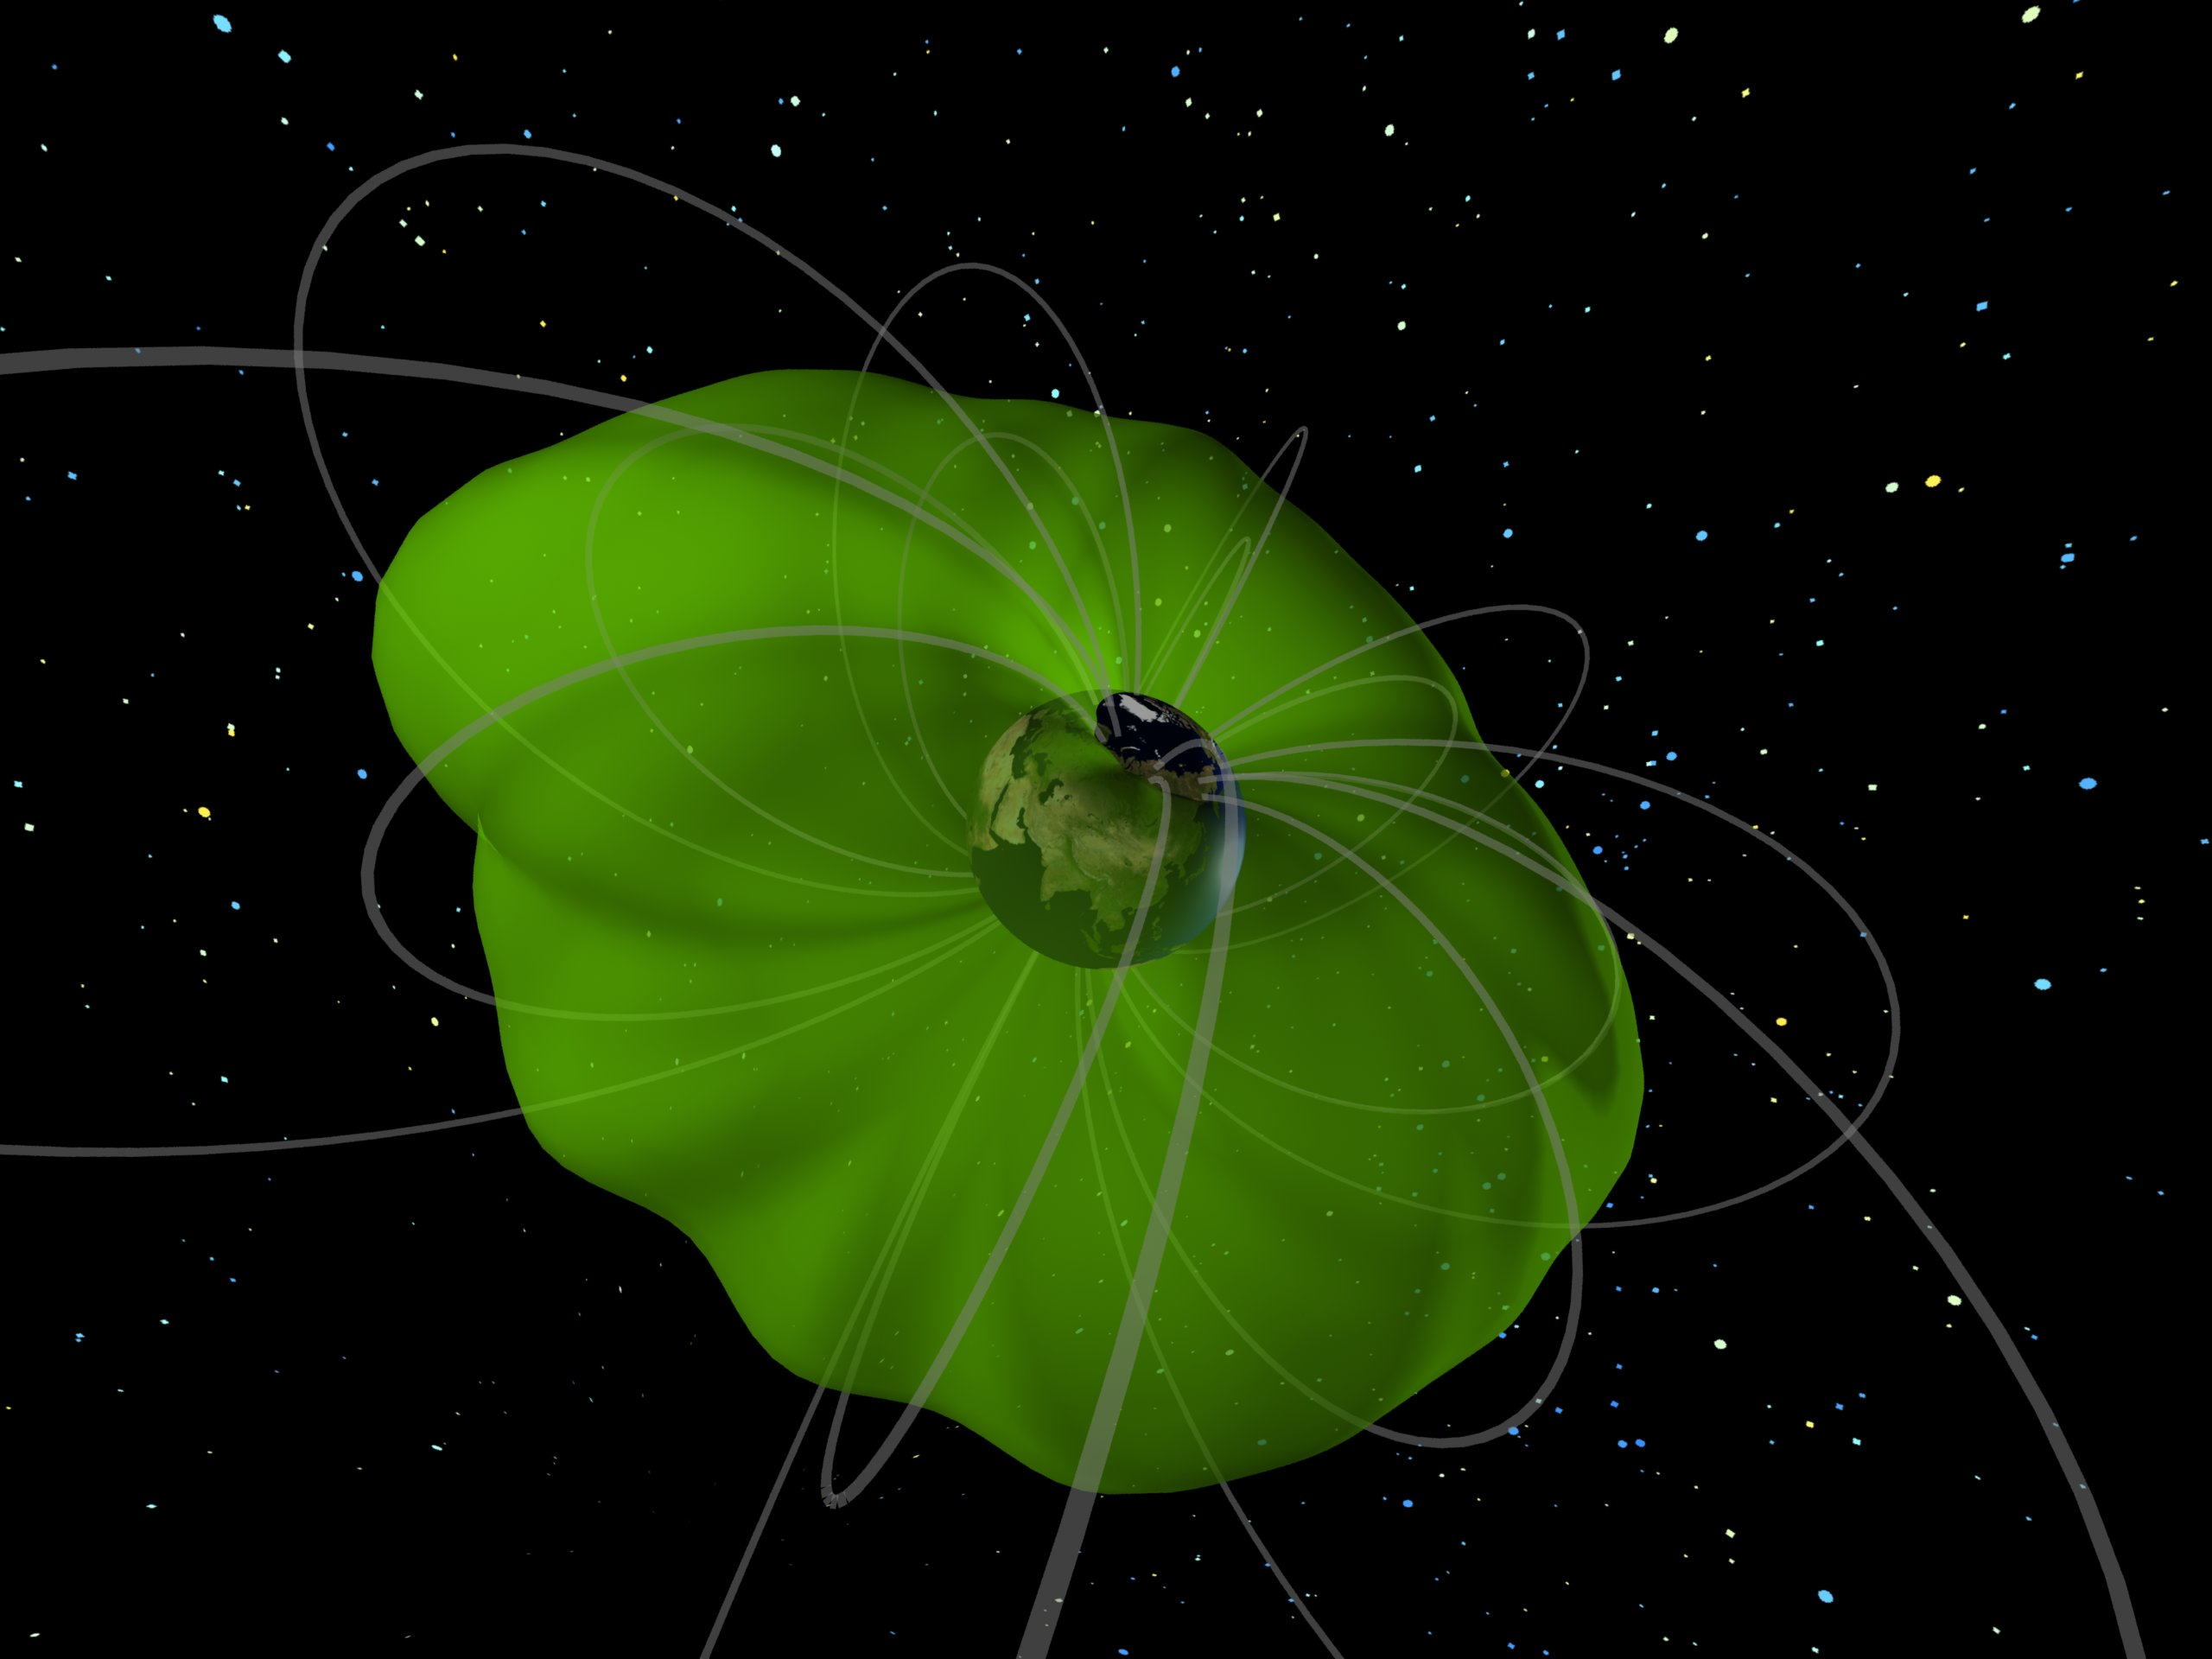 NASA's newly rediscovered IMAGE mission provided key aurora research